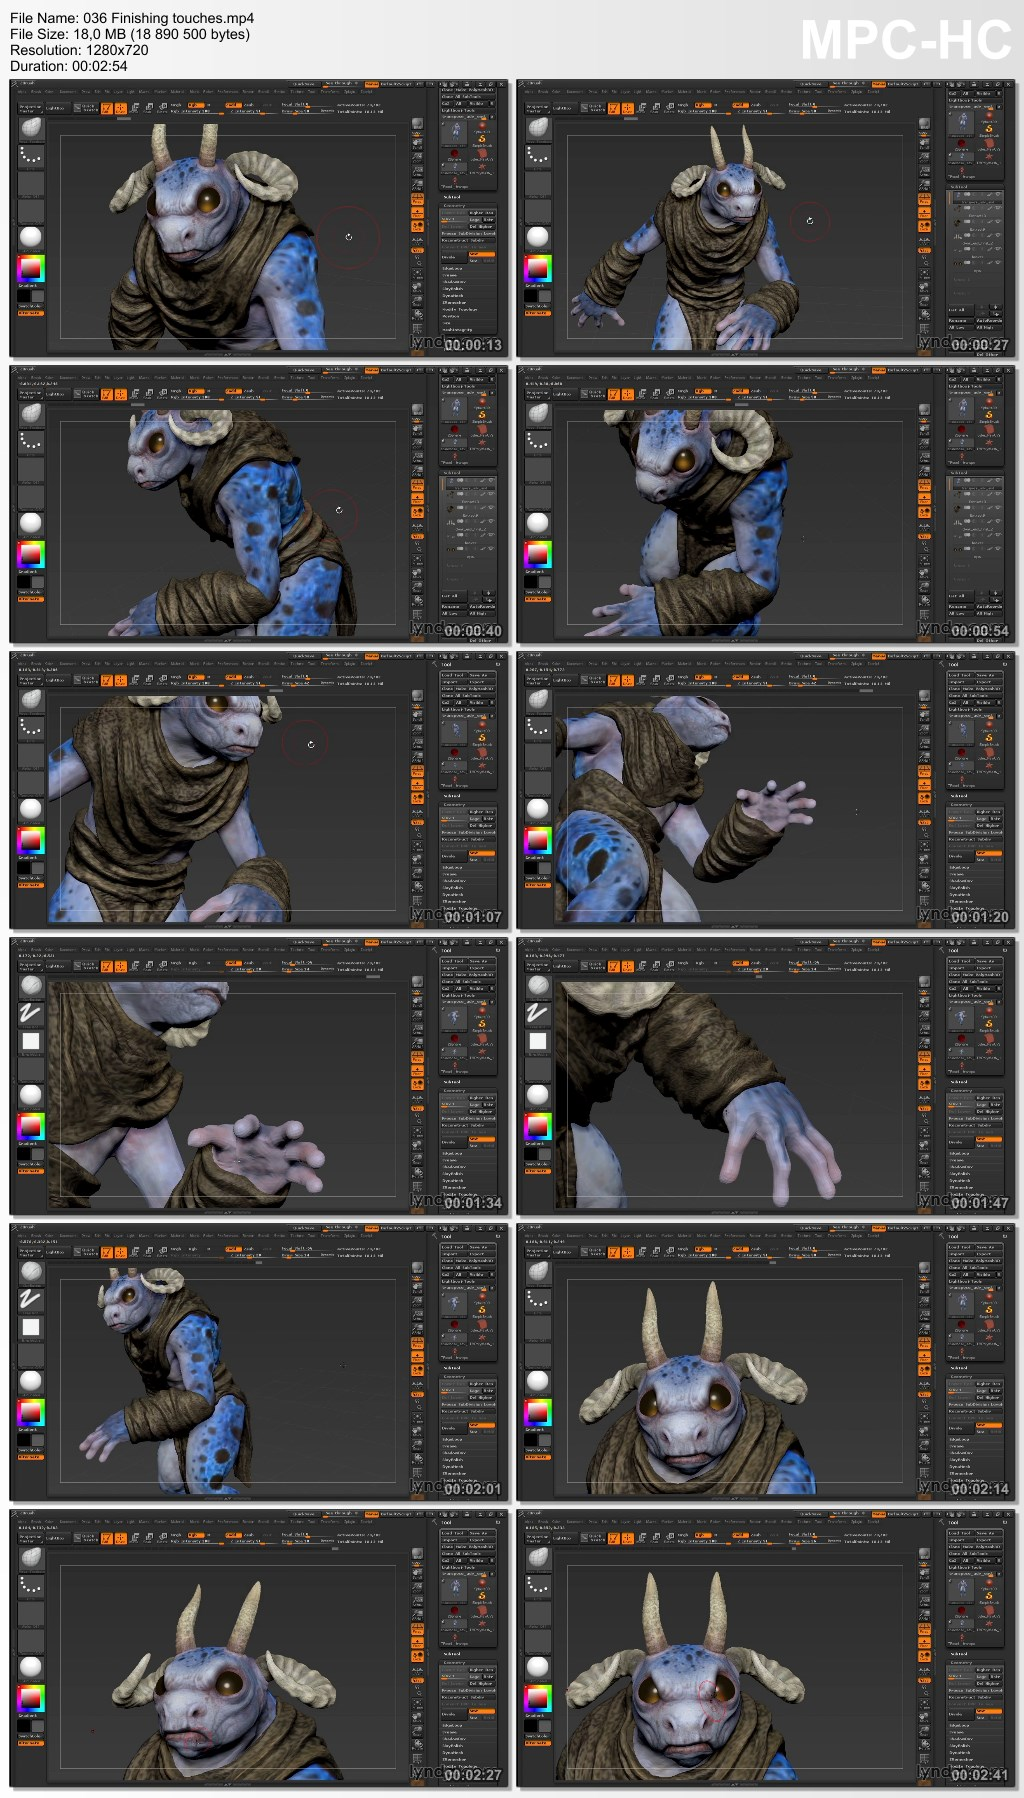 Lynda - Sculpting a Creature with ZBrush and Photoshop